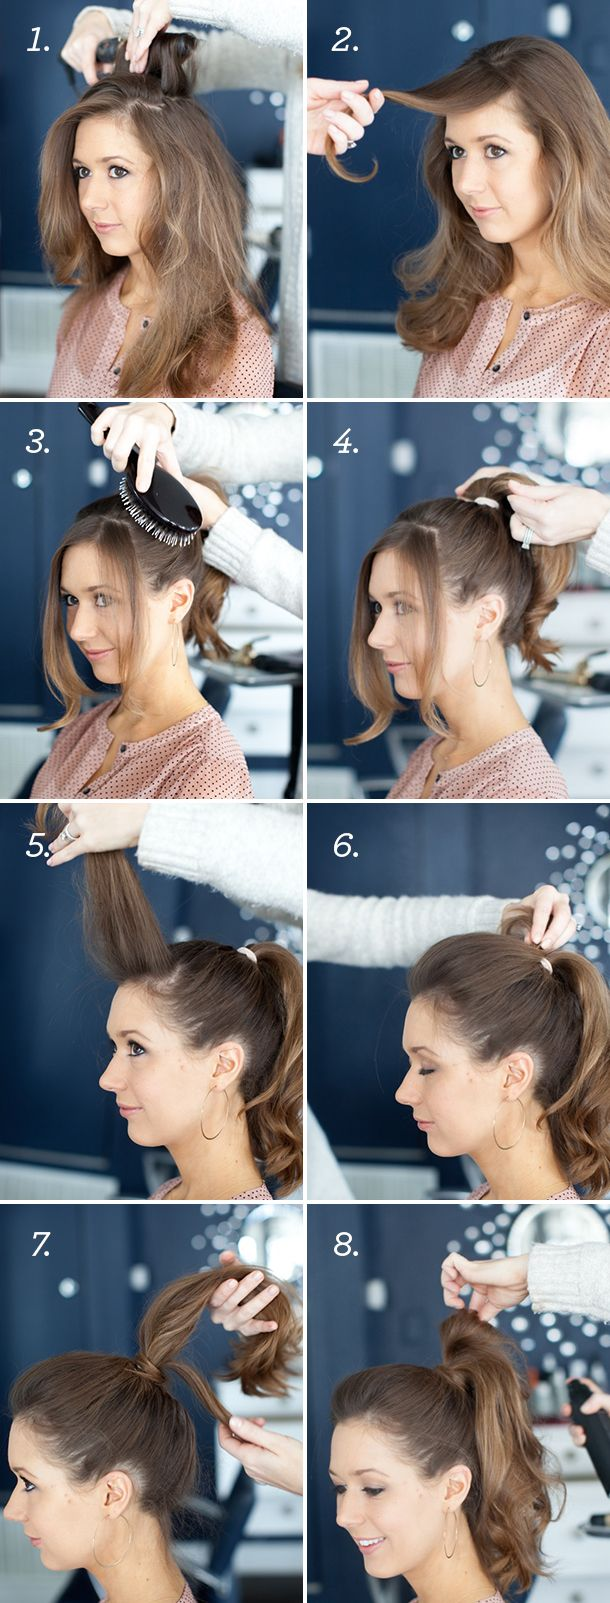 Outstanding 1000 Ideas About Perfect Ponytail On Pinterest Cute Girls Short Hairstyles Gunalazisus